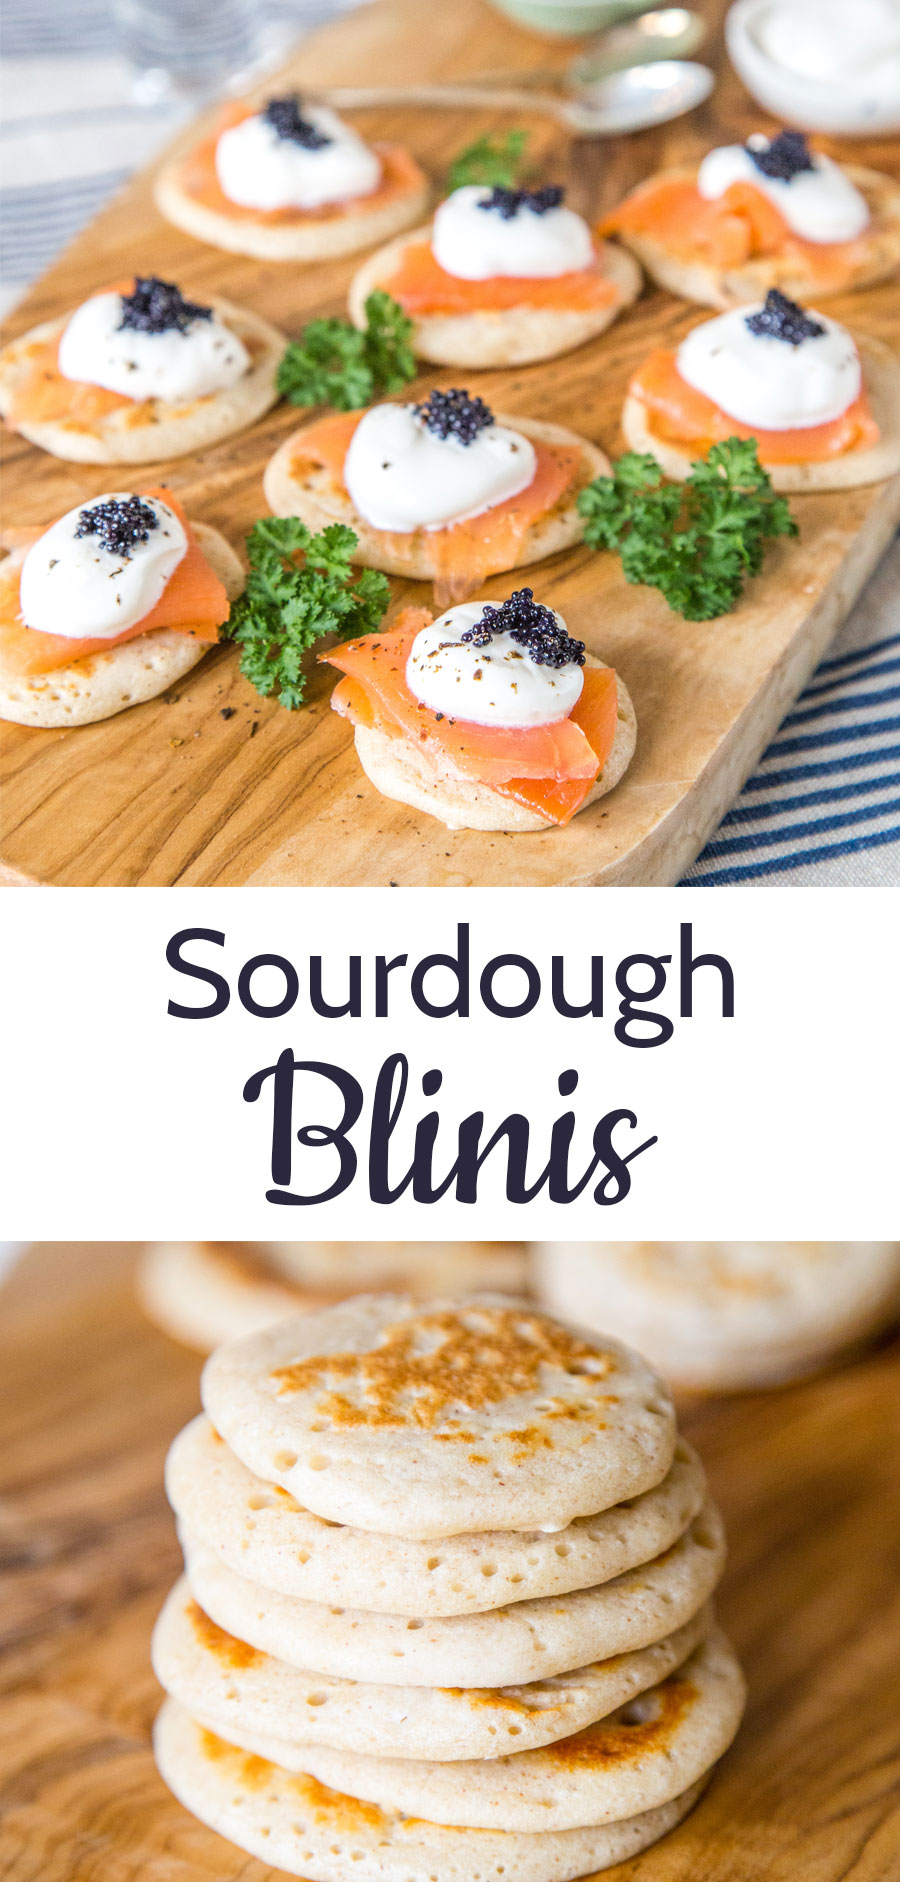 These tasty savoury buckwheat blinis are made using sourdough leaven. Perfect served as a base for canapés, or breakfast pancakes with a difference